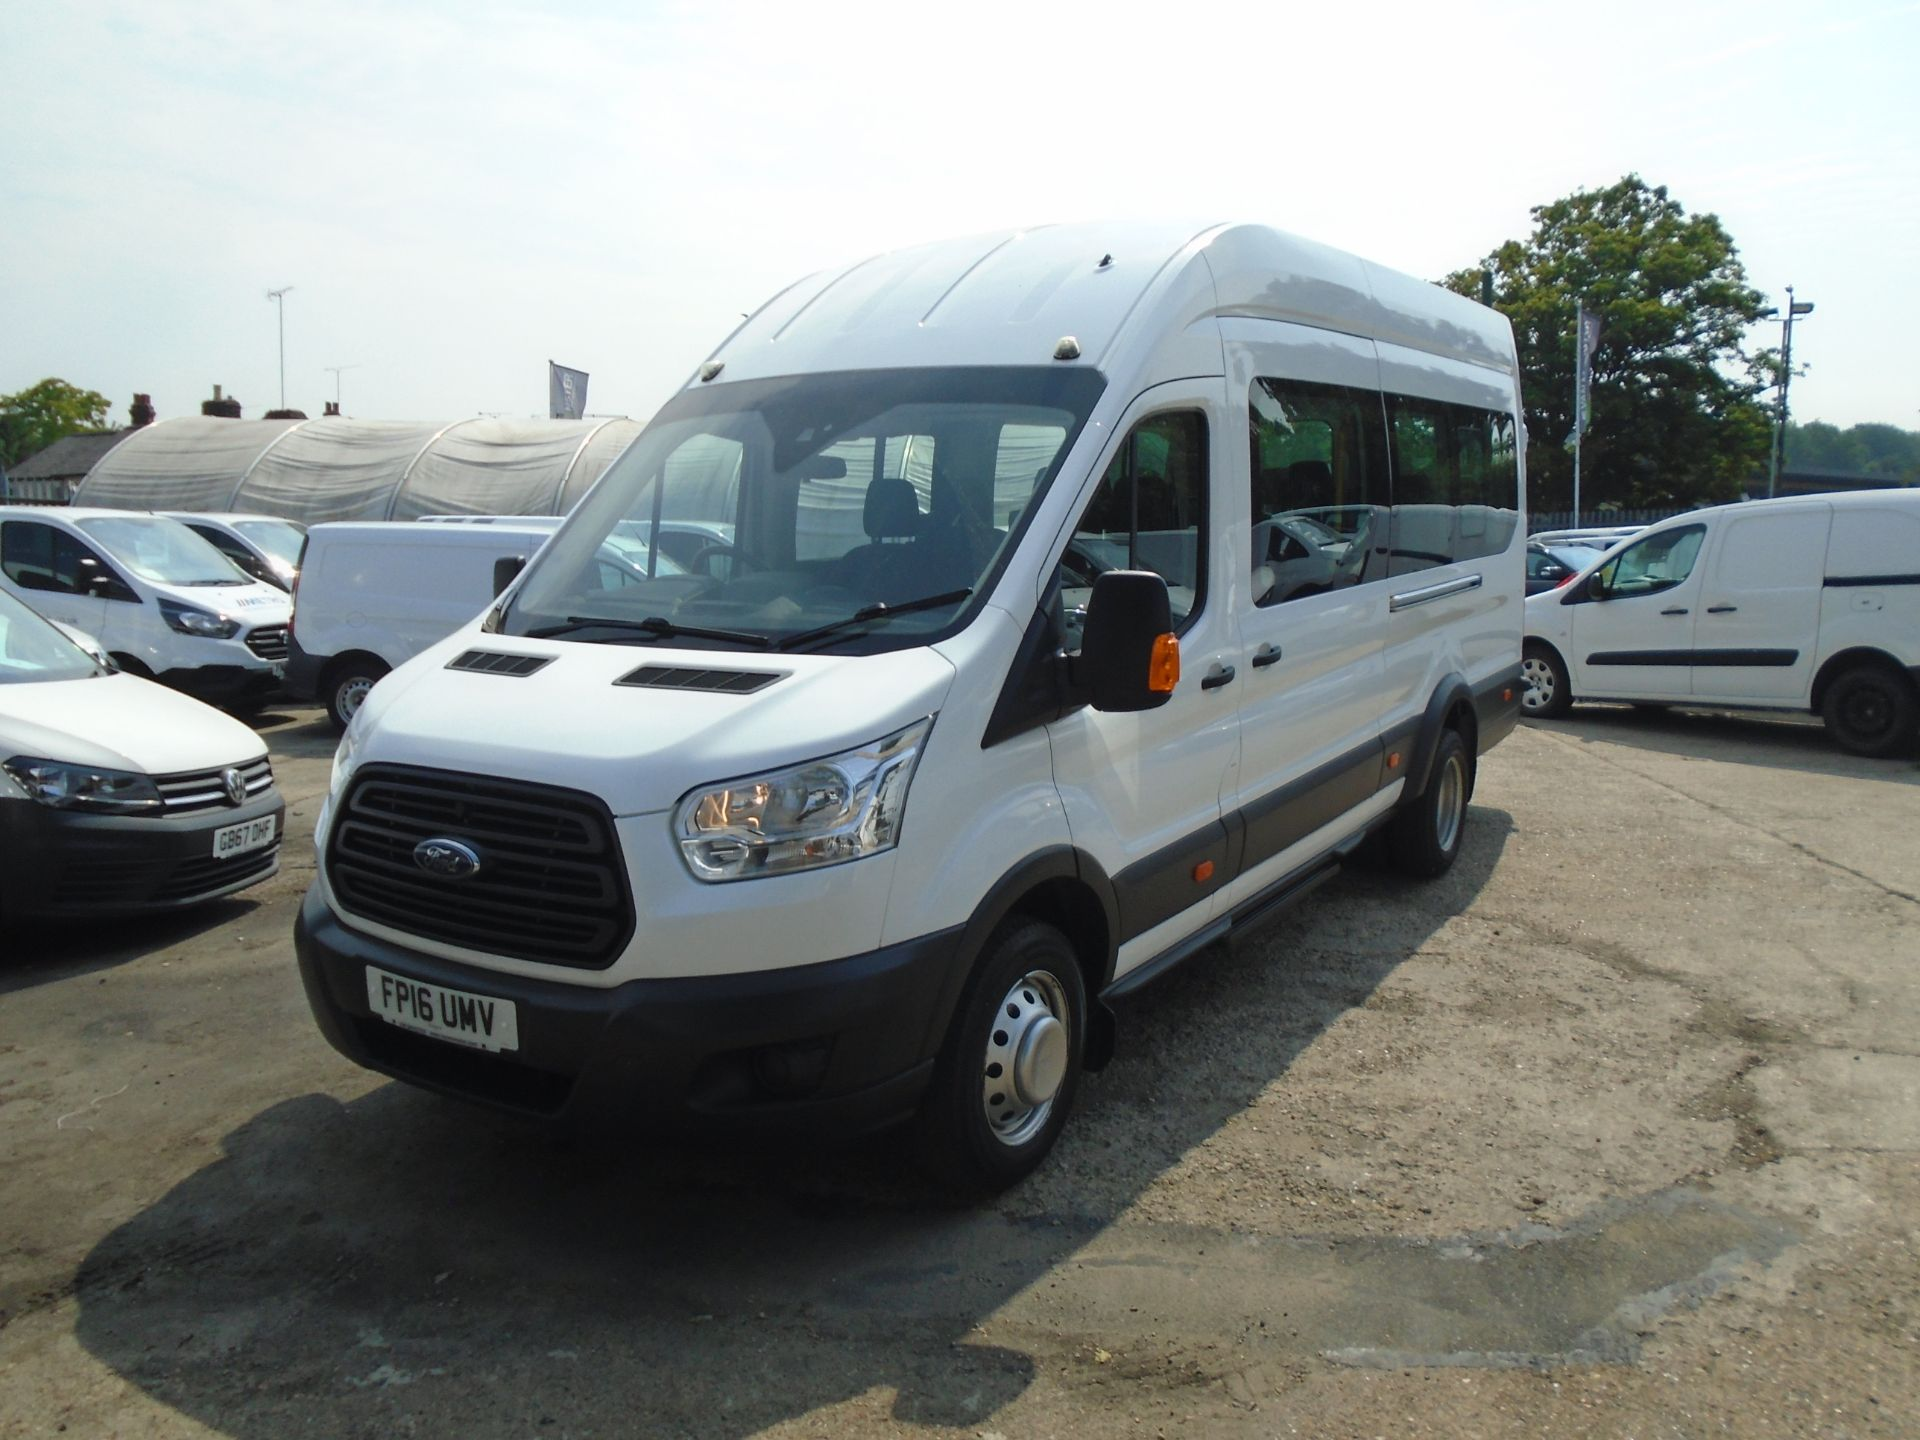 2016 Ford Transit 2.2 Tdci 125Ps H3 17 Seater (FP16UMV) Image 3